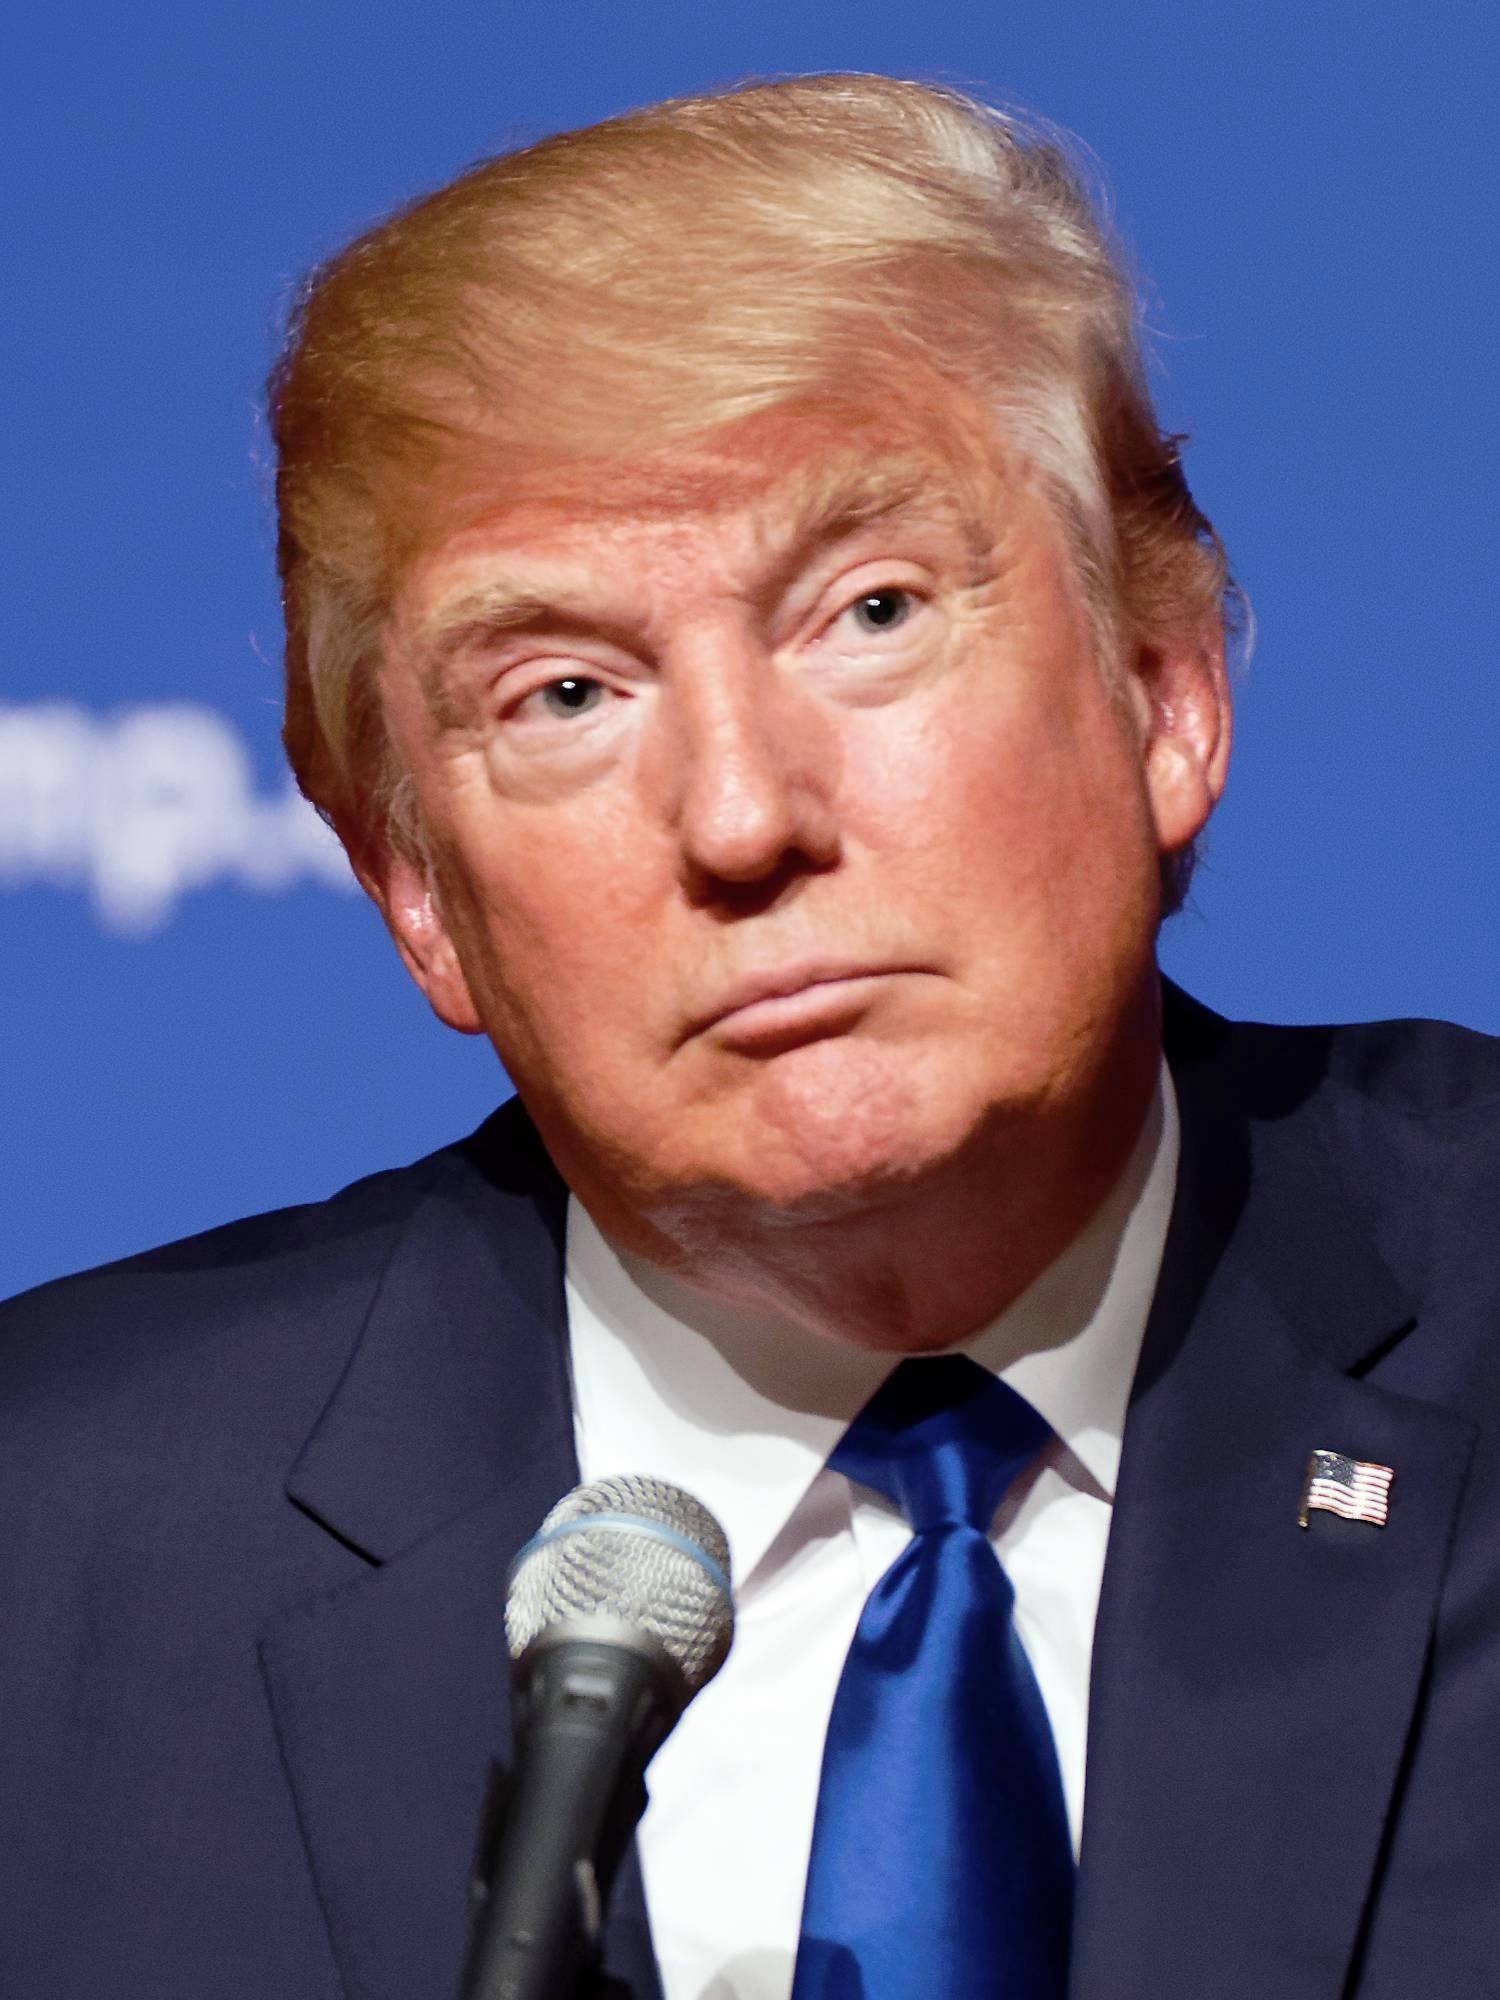 Donald Trump, presidente estadounidense. | Foto: Wikimedia Commons